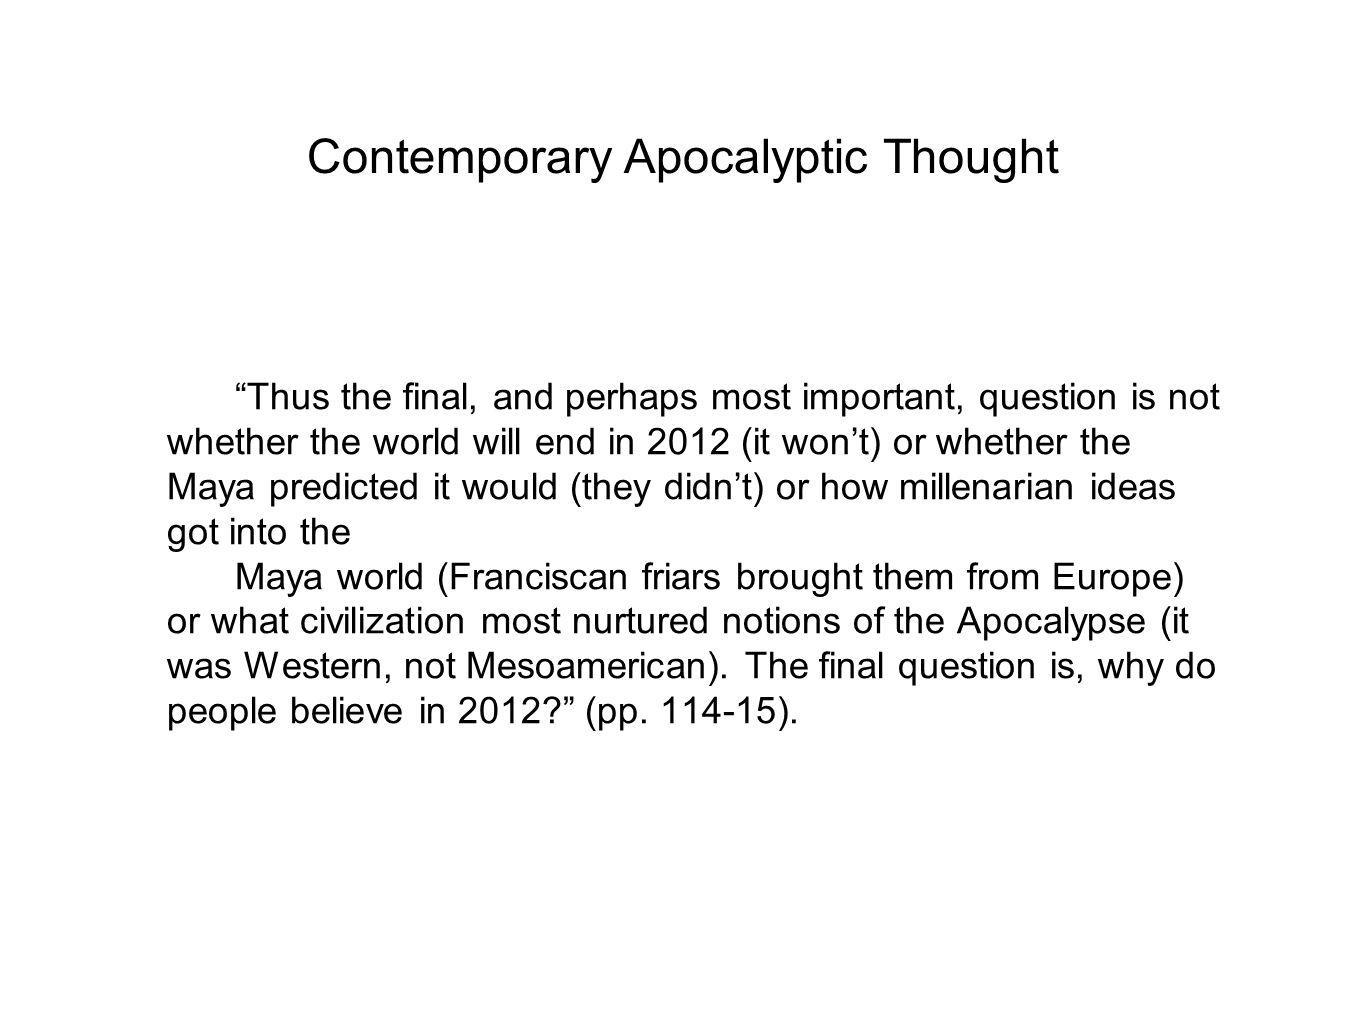 Contemporary Apocalyptic Thought Thus the final, and perhaps most important, question is not whether the world will end in 2012 (it won't) or whether the Maya predicted it would (they didn't) or how millenarian ideas got into the Maya world (Franciscan friars brought them from Europe) or what civilization most nurtured notions of the Apocalypse (it was Western, not Mesoamerican).